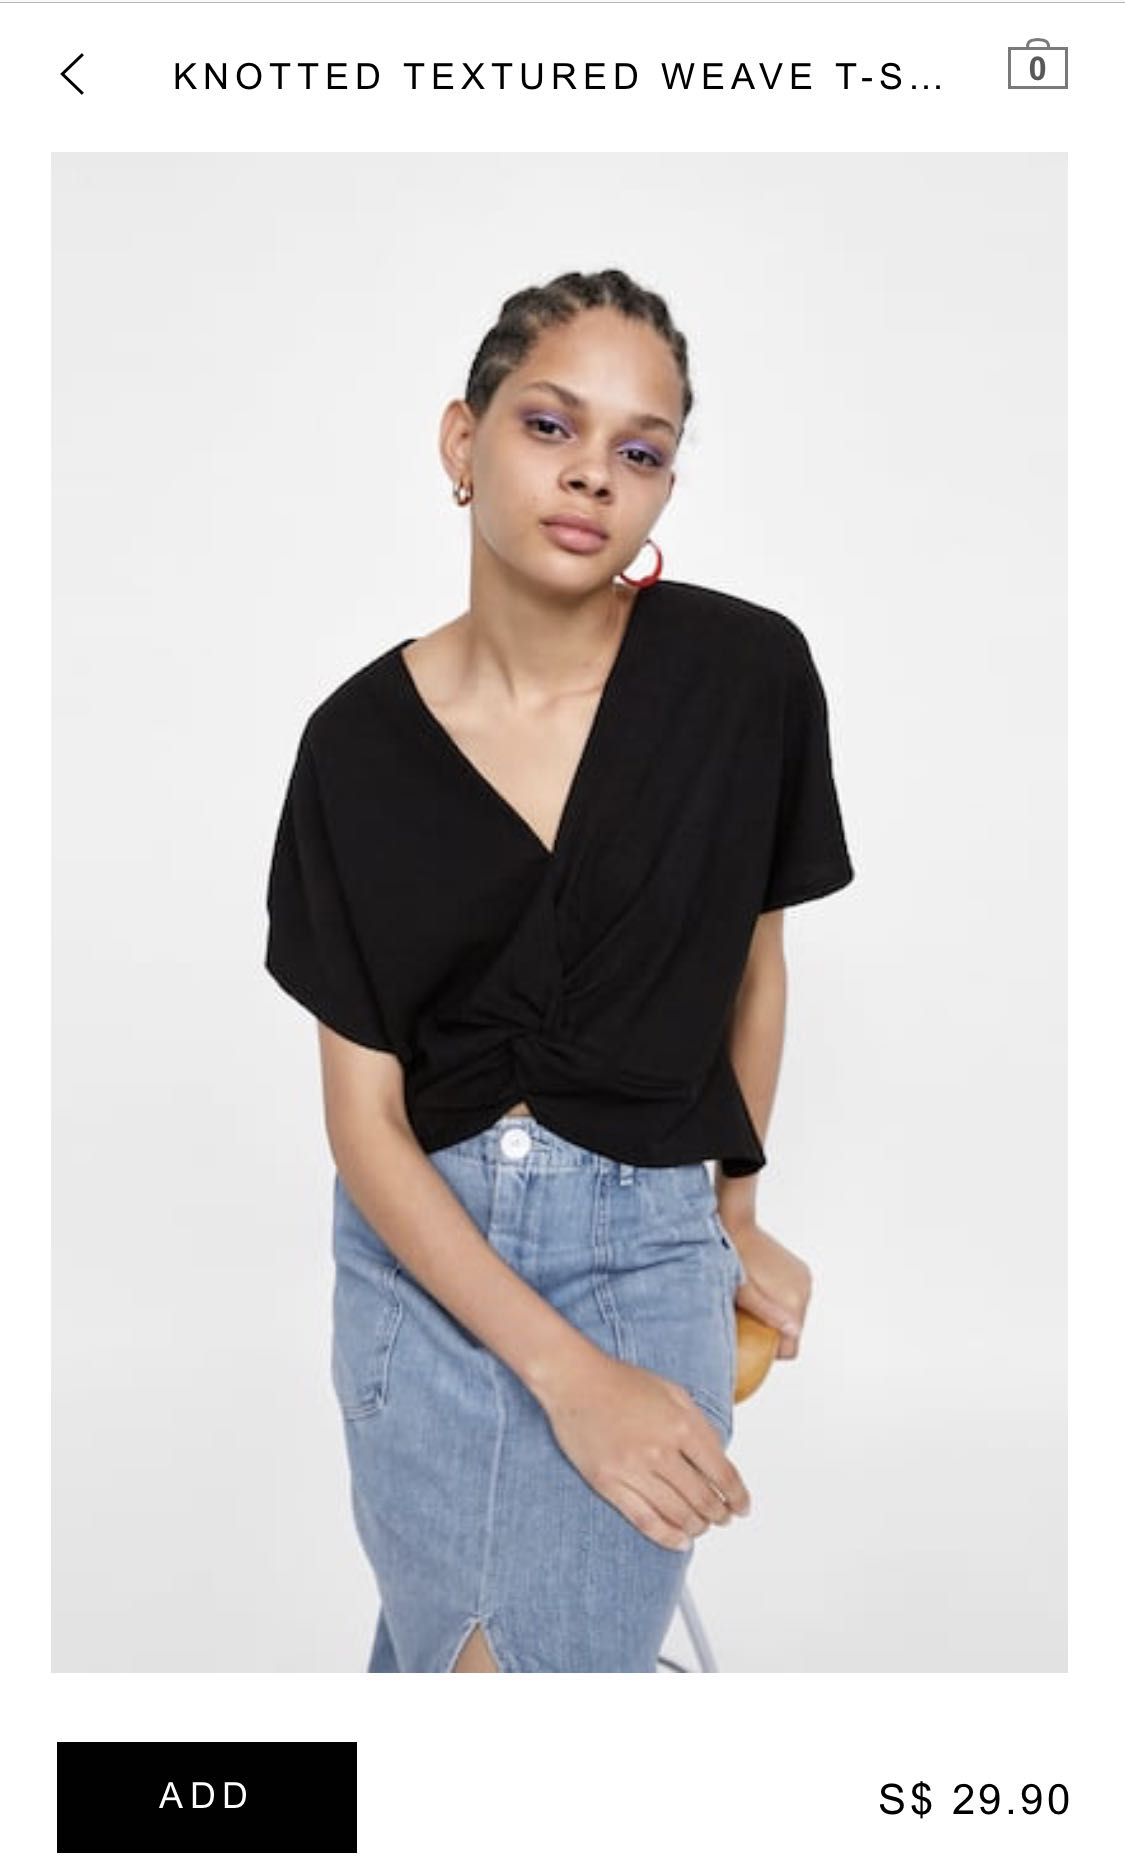 5a994525edb Zara Knotted Textured Weave T-shirt, Women's Fashion, Clothes, Tops ...